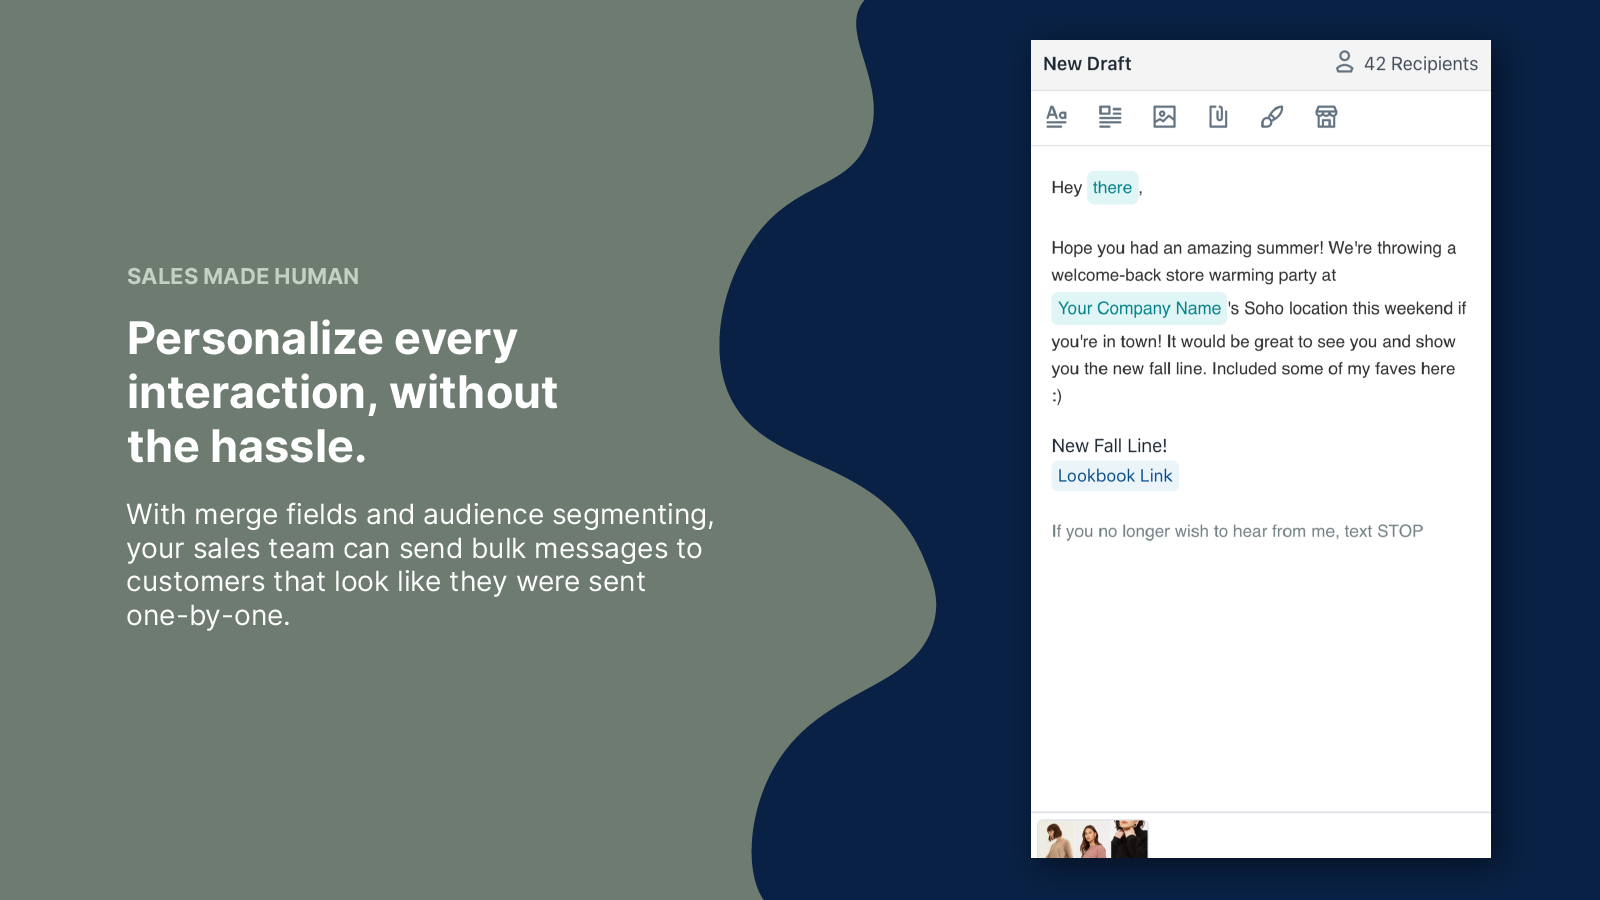 Send bulk messages that look like they were sent one by one.